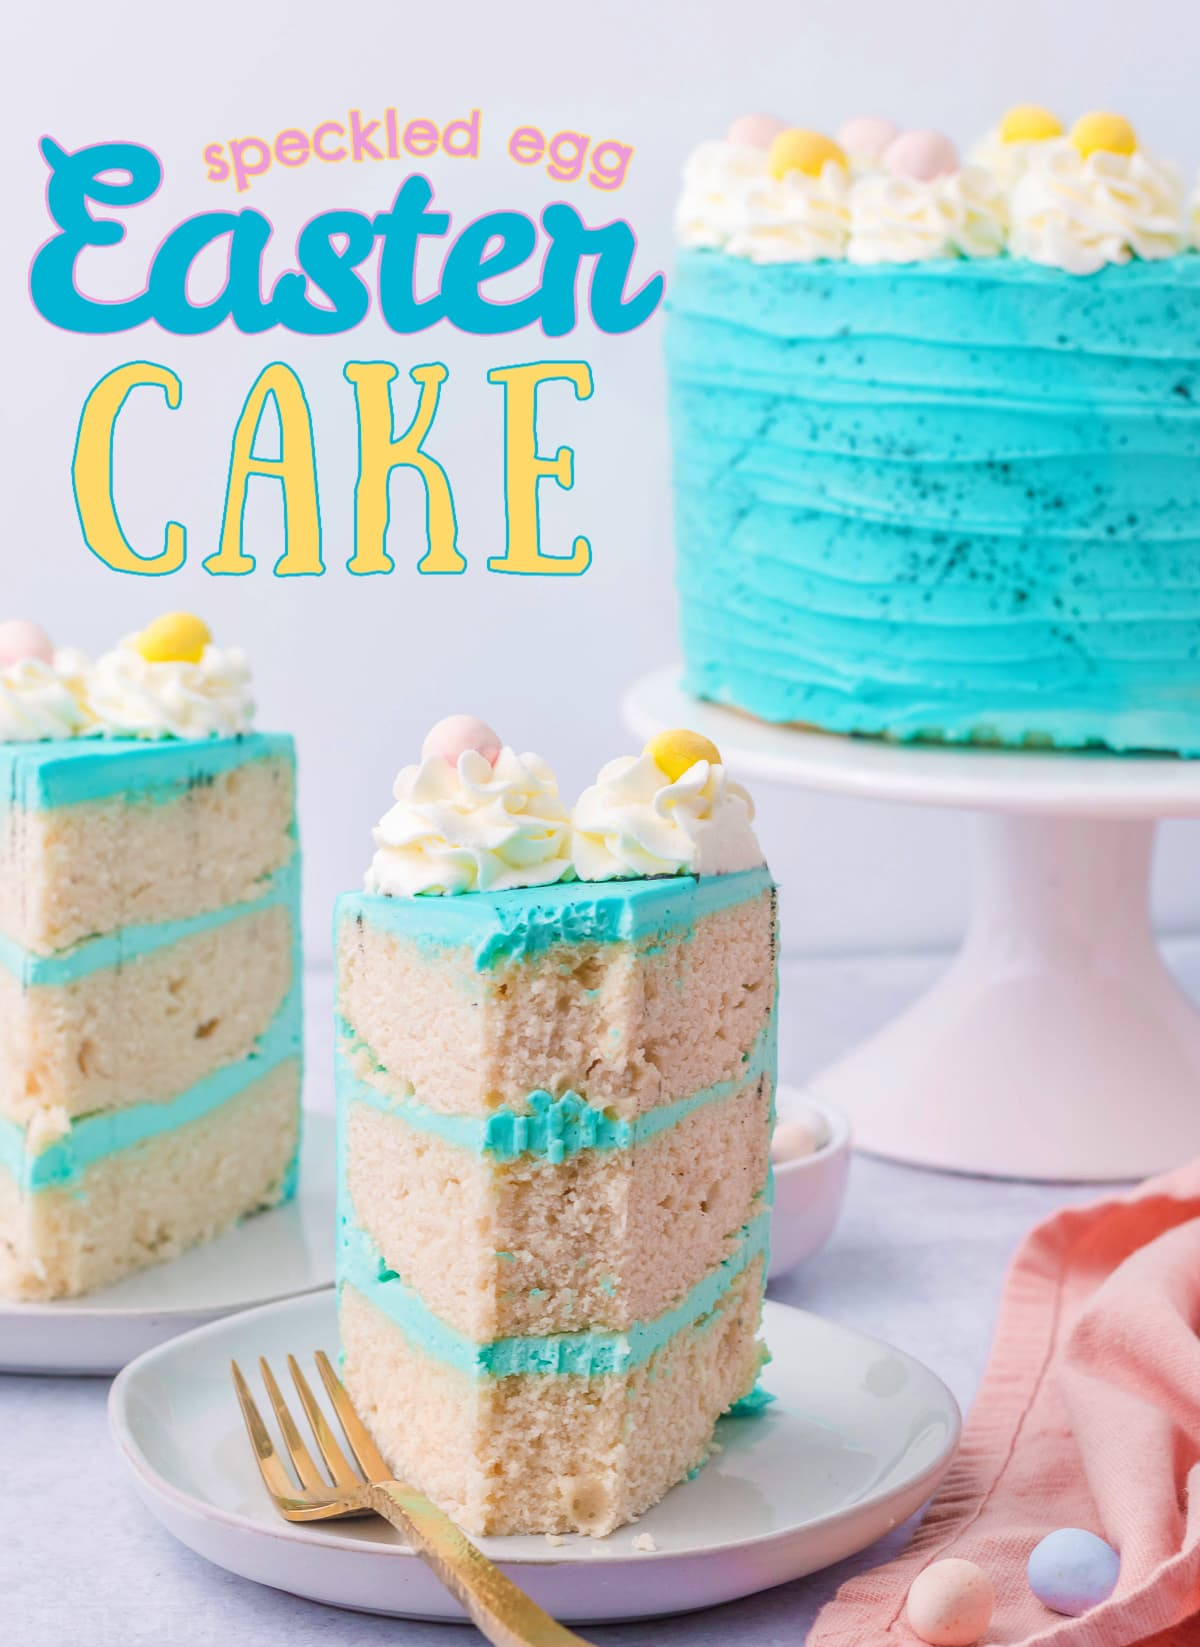 slice of vanilla cake with turquoise frosting and easter eggs on top with whole cake in background and title overlay at top of image.